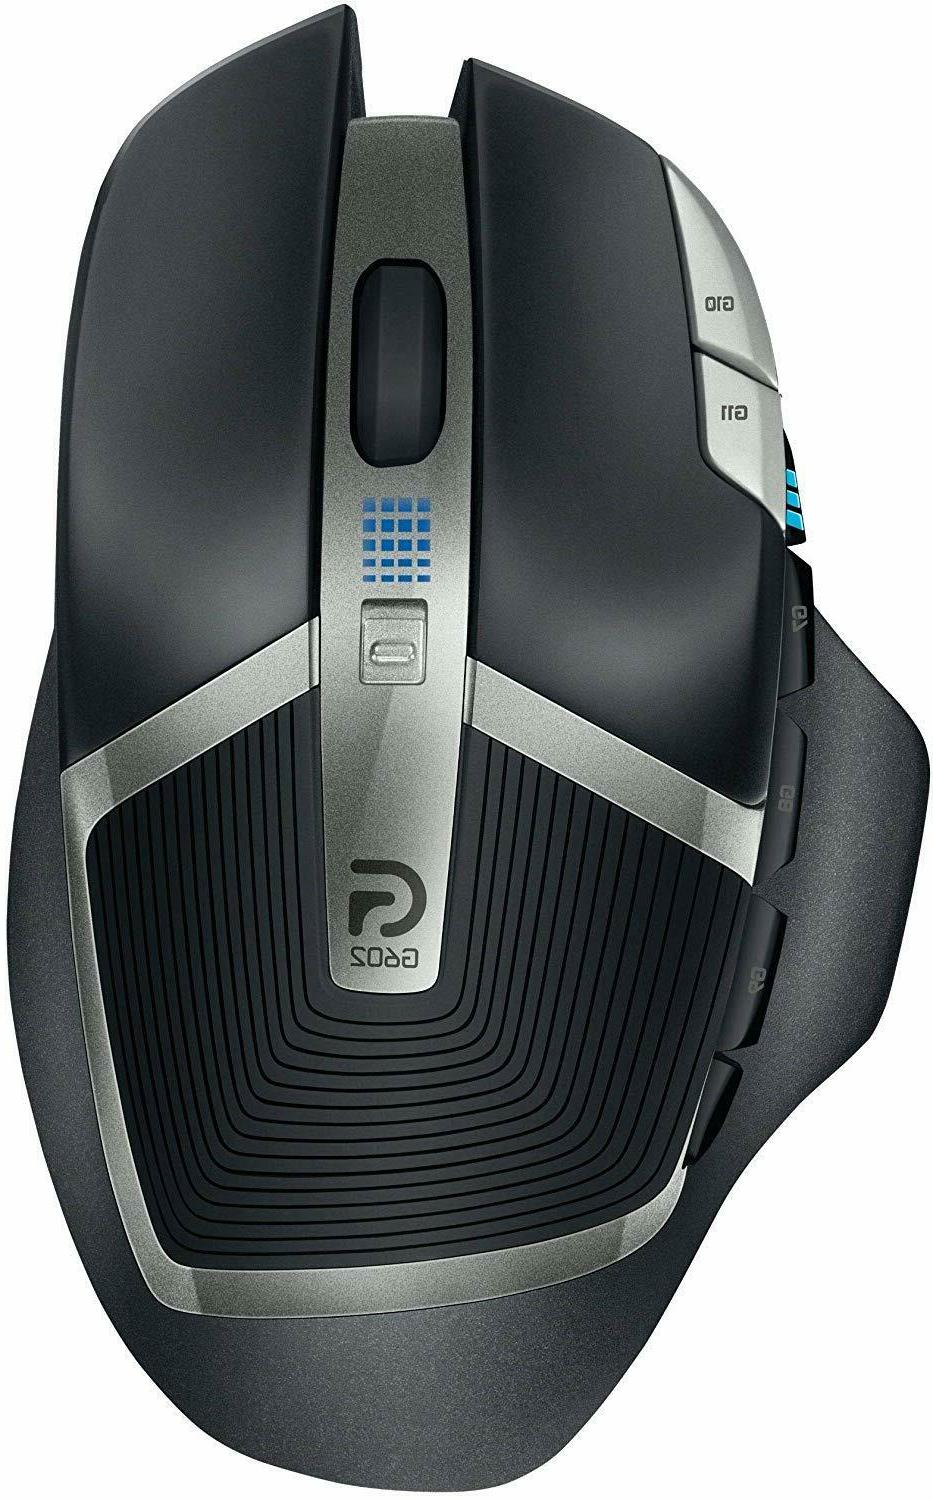 602 lag free wireless mouse 11 programmable